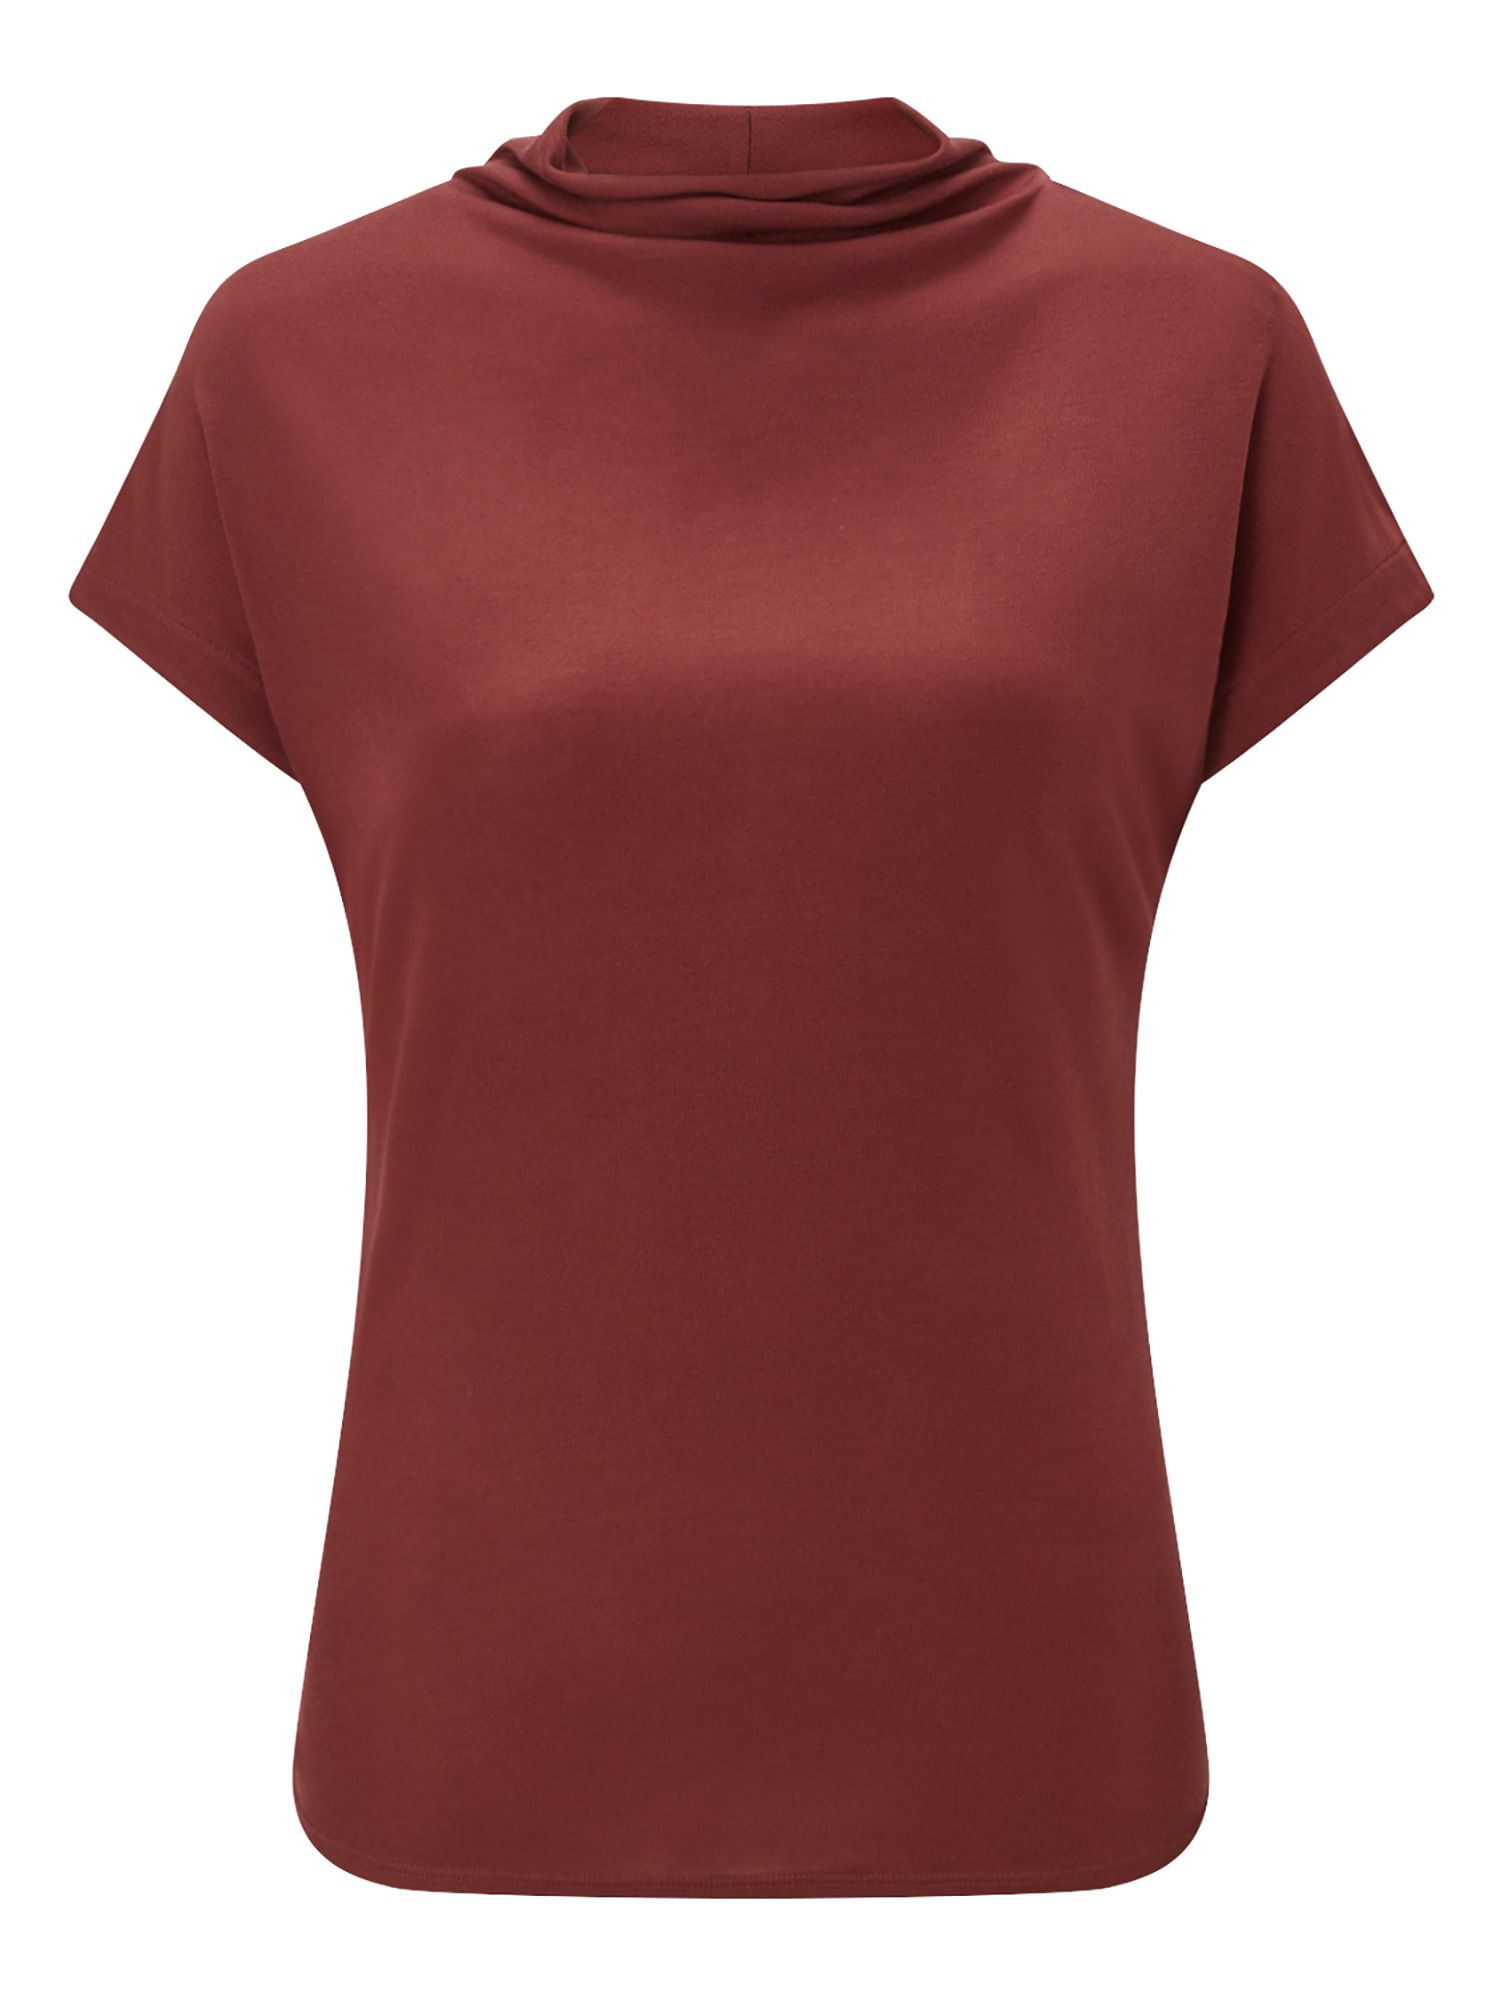 Jigsaw Turtleneck Cap Sleeve Tee, Red